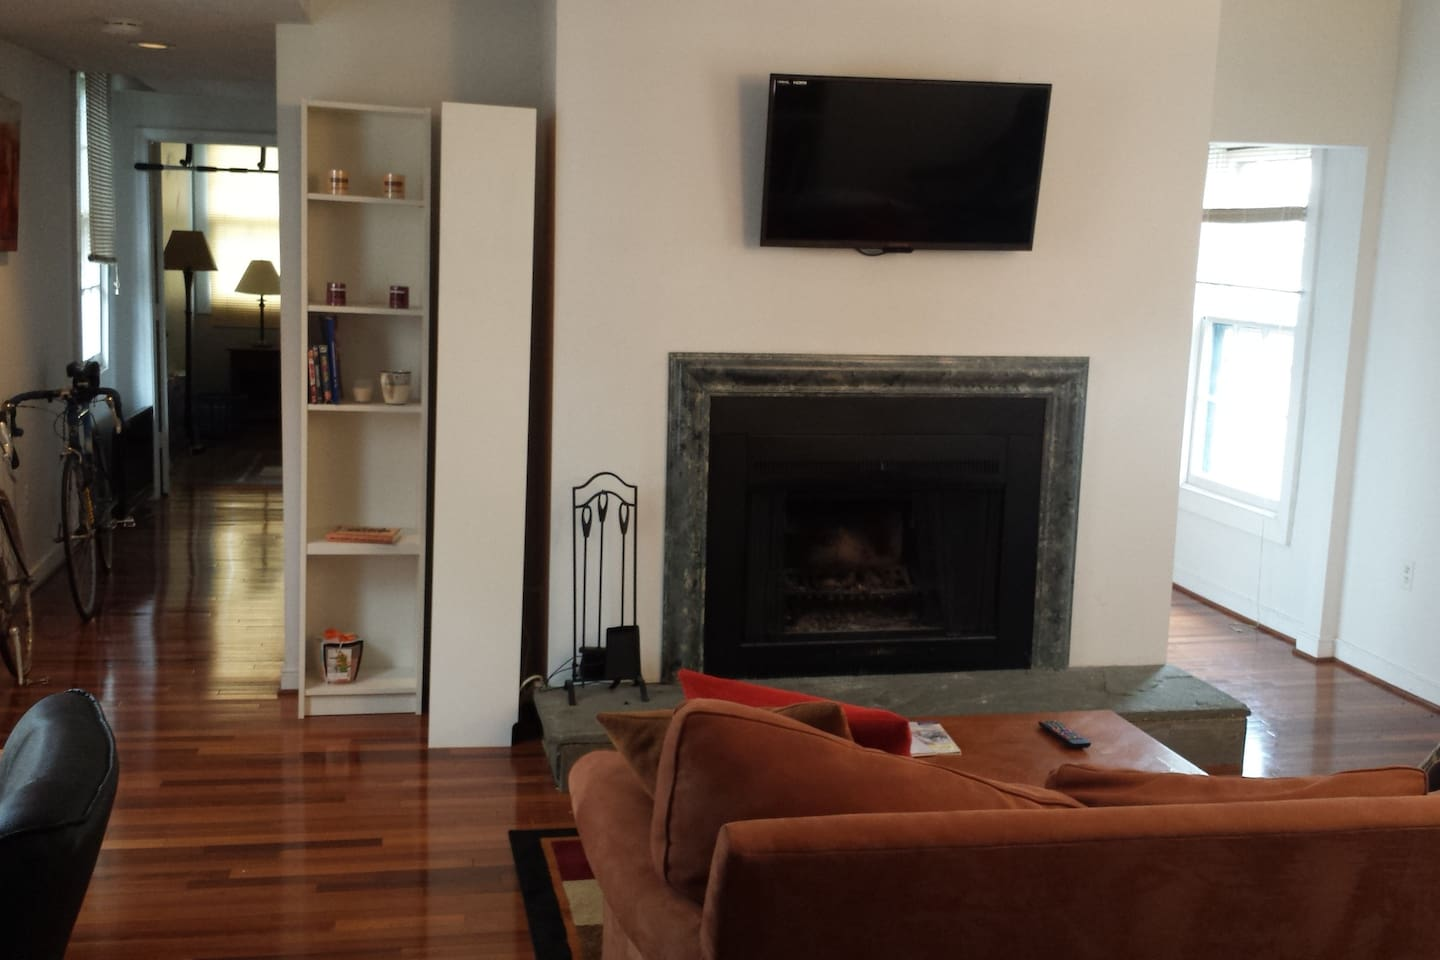 Spacious living room with fireplace and mounted TV (with chromecast set up for easy viewing)